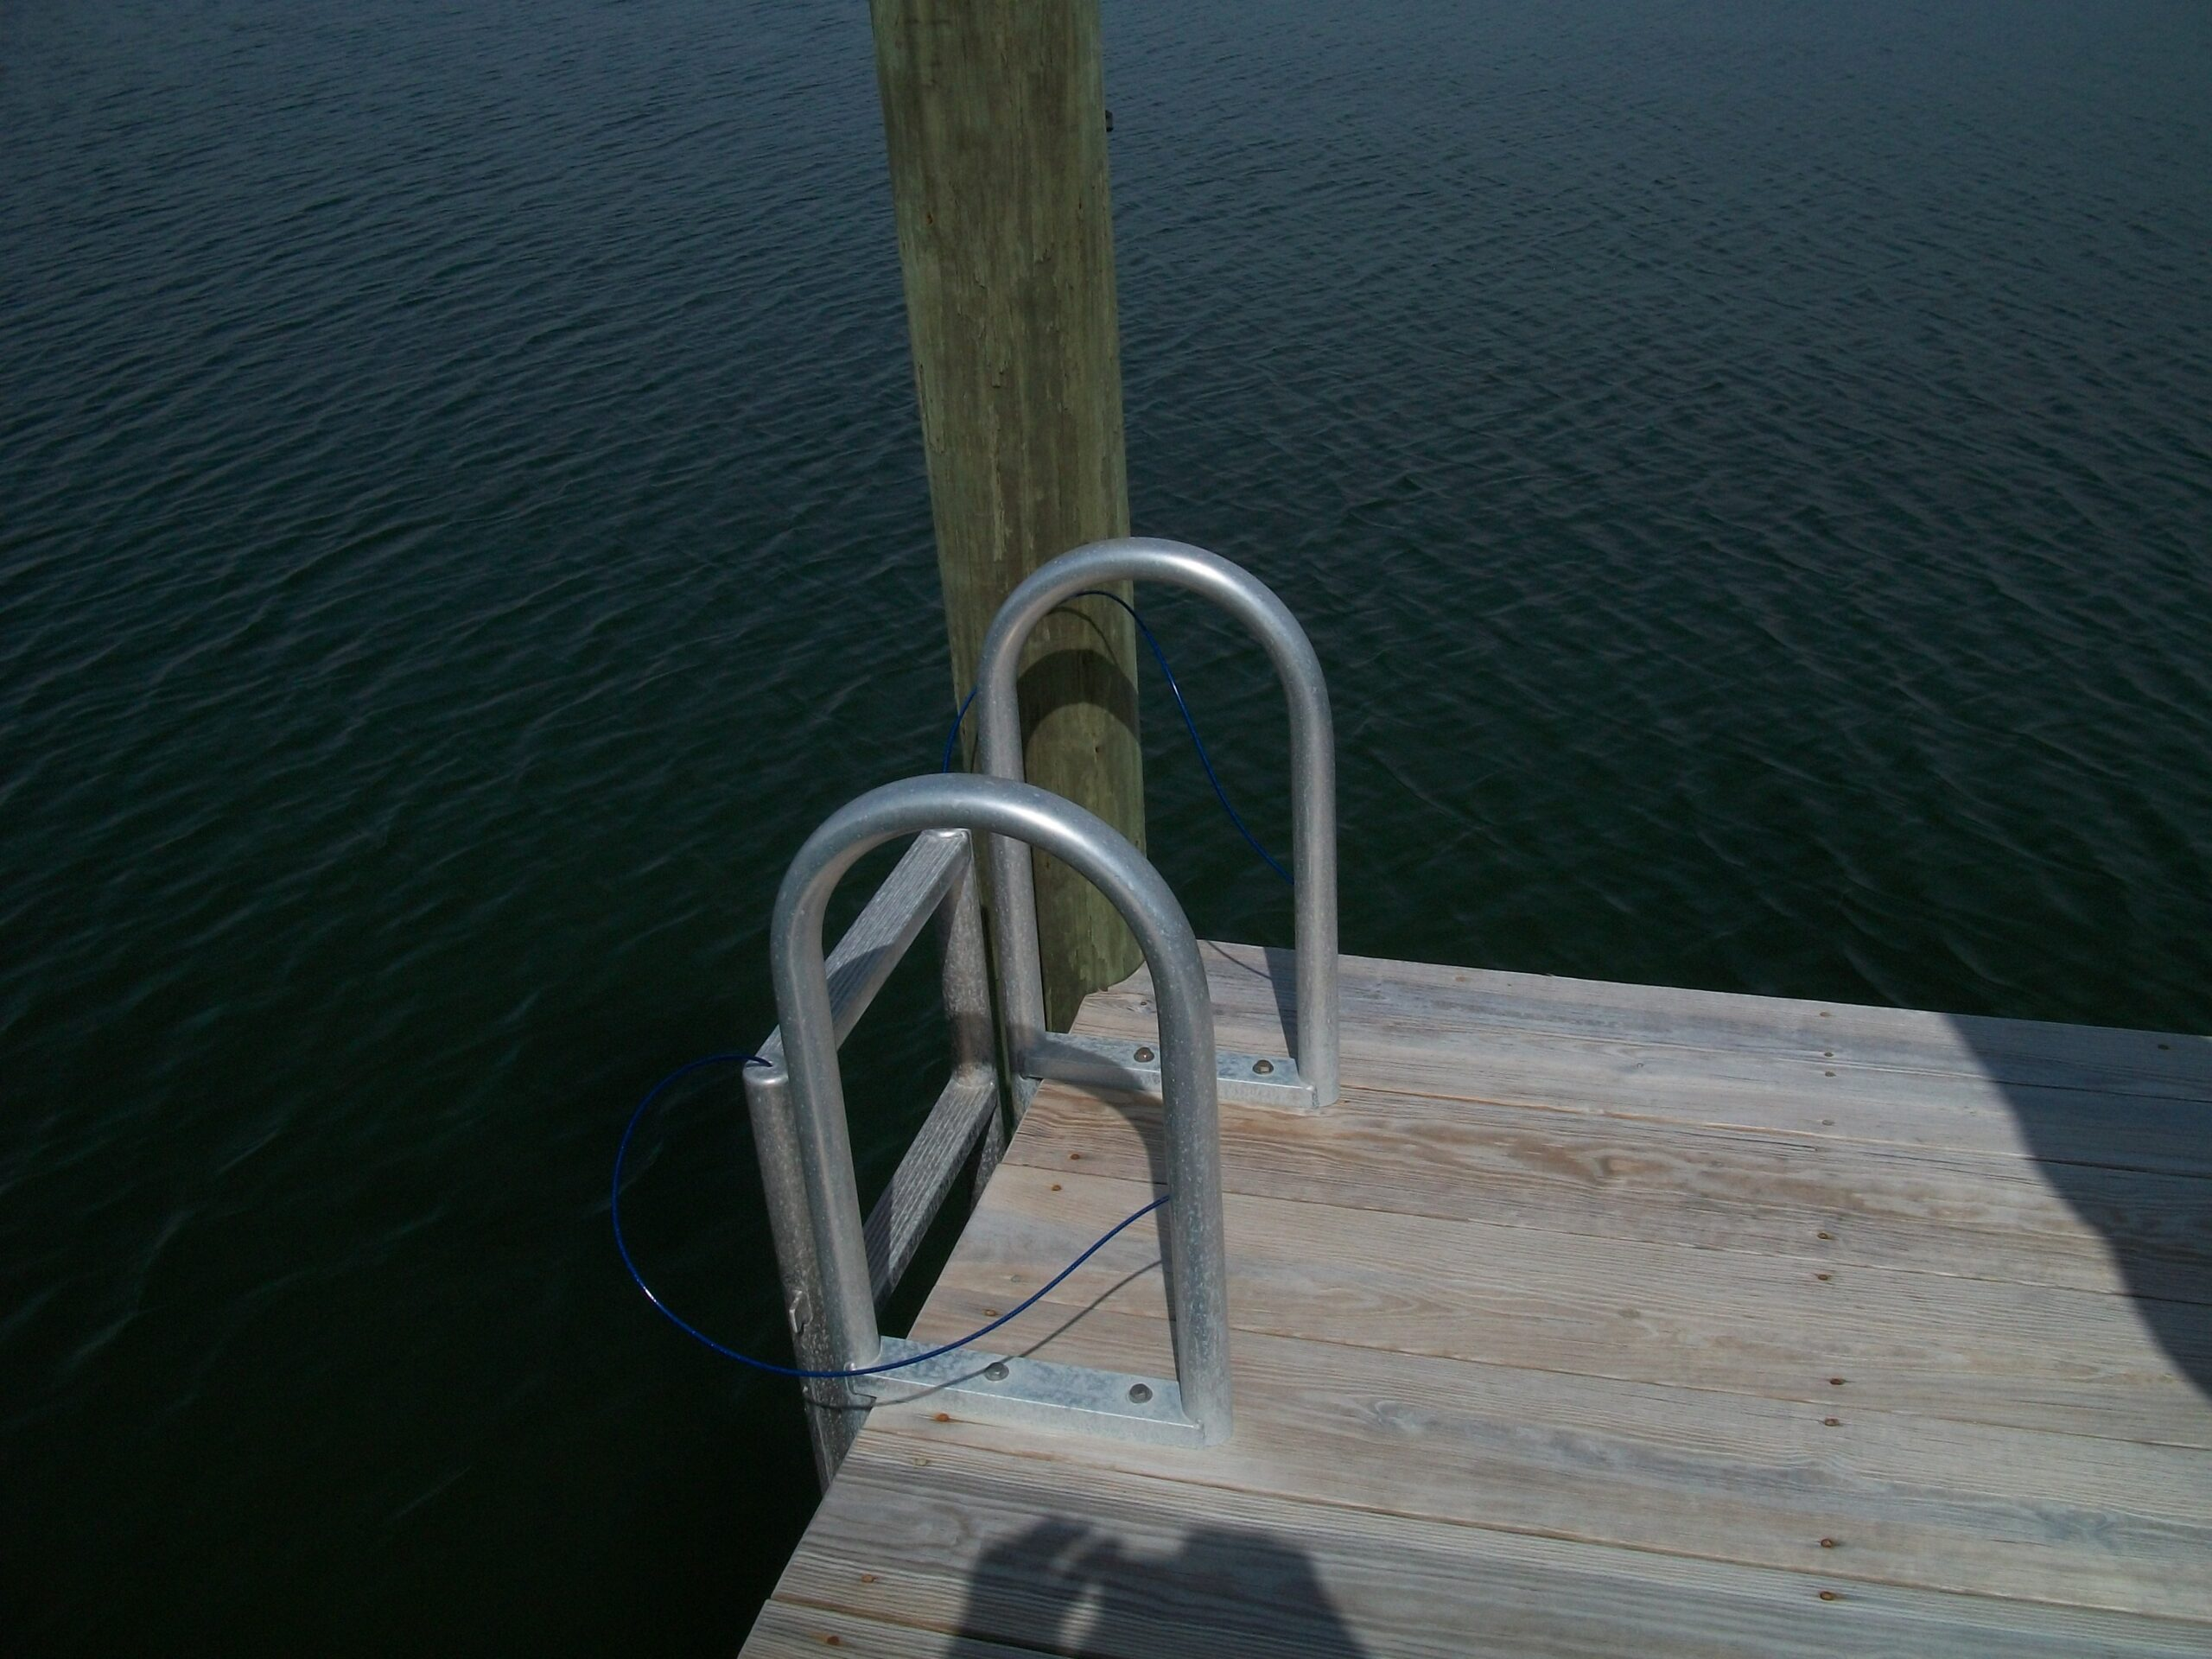 Docks_and_Accessories-4-scaled.jpg